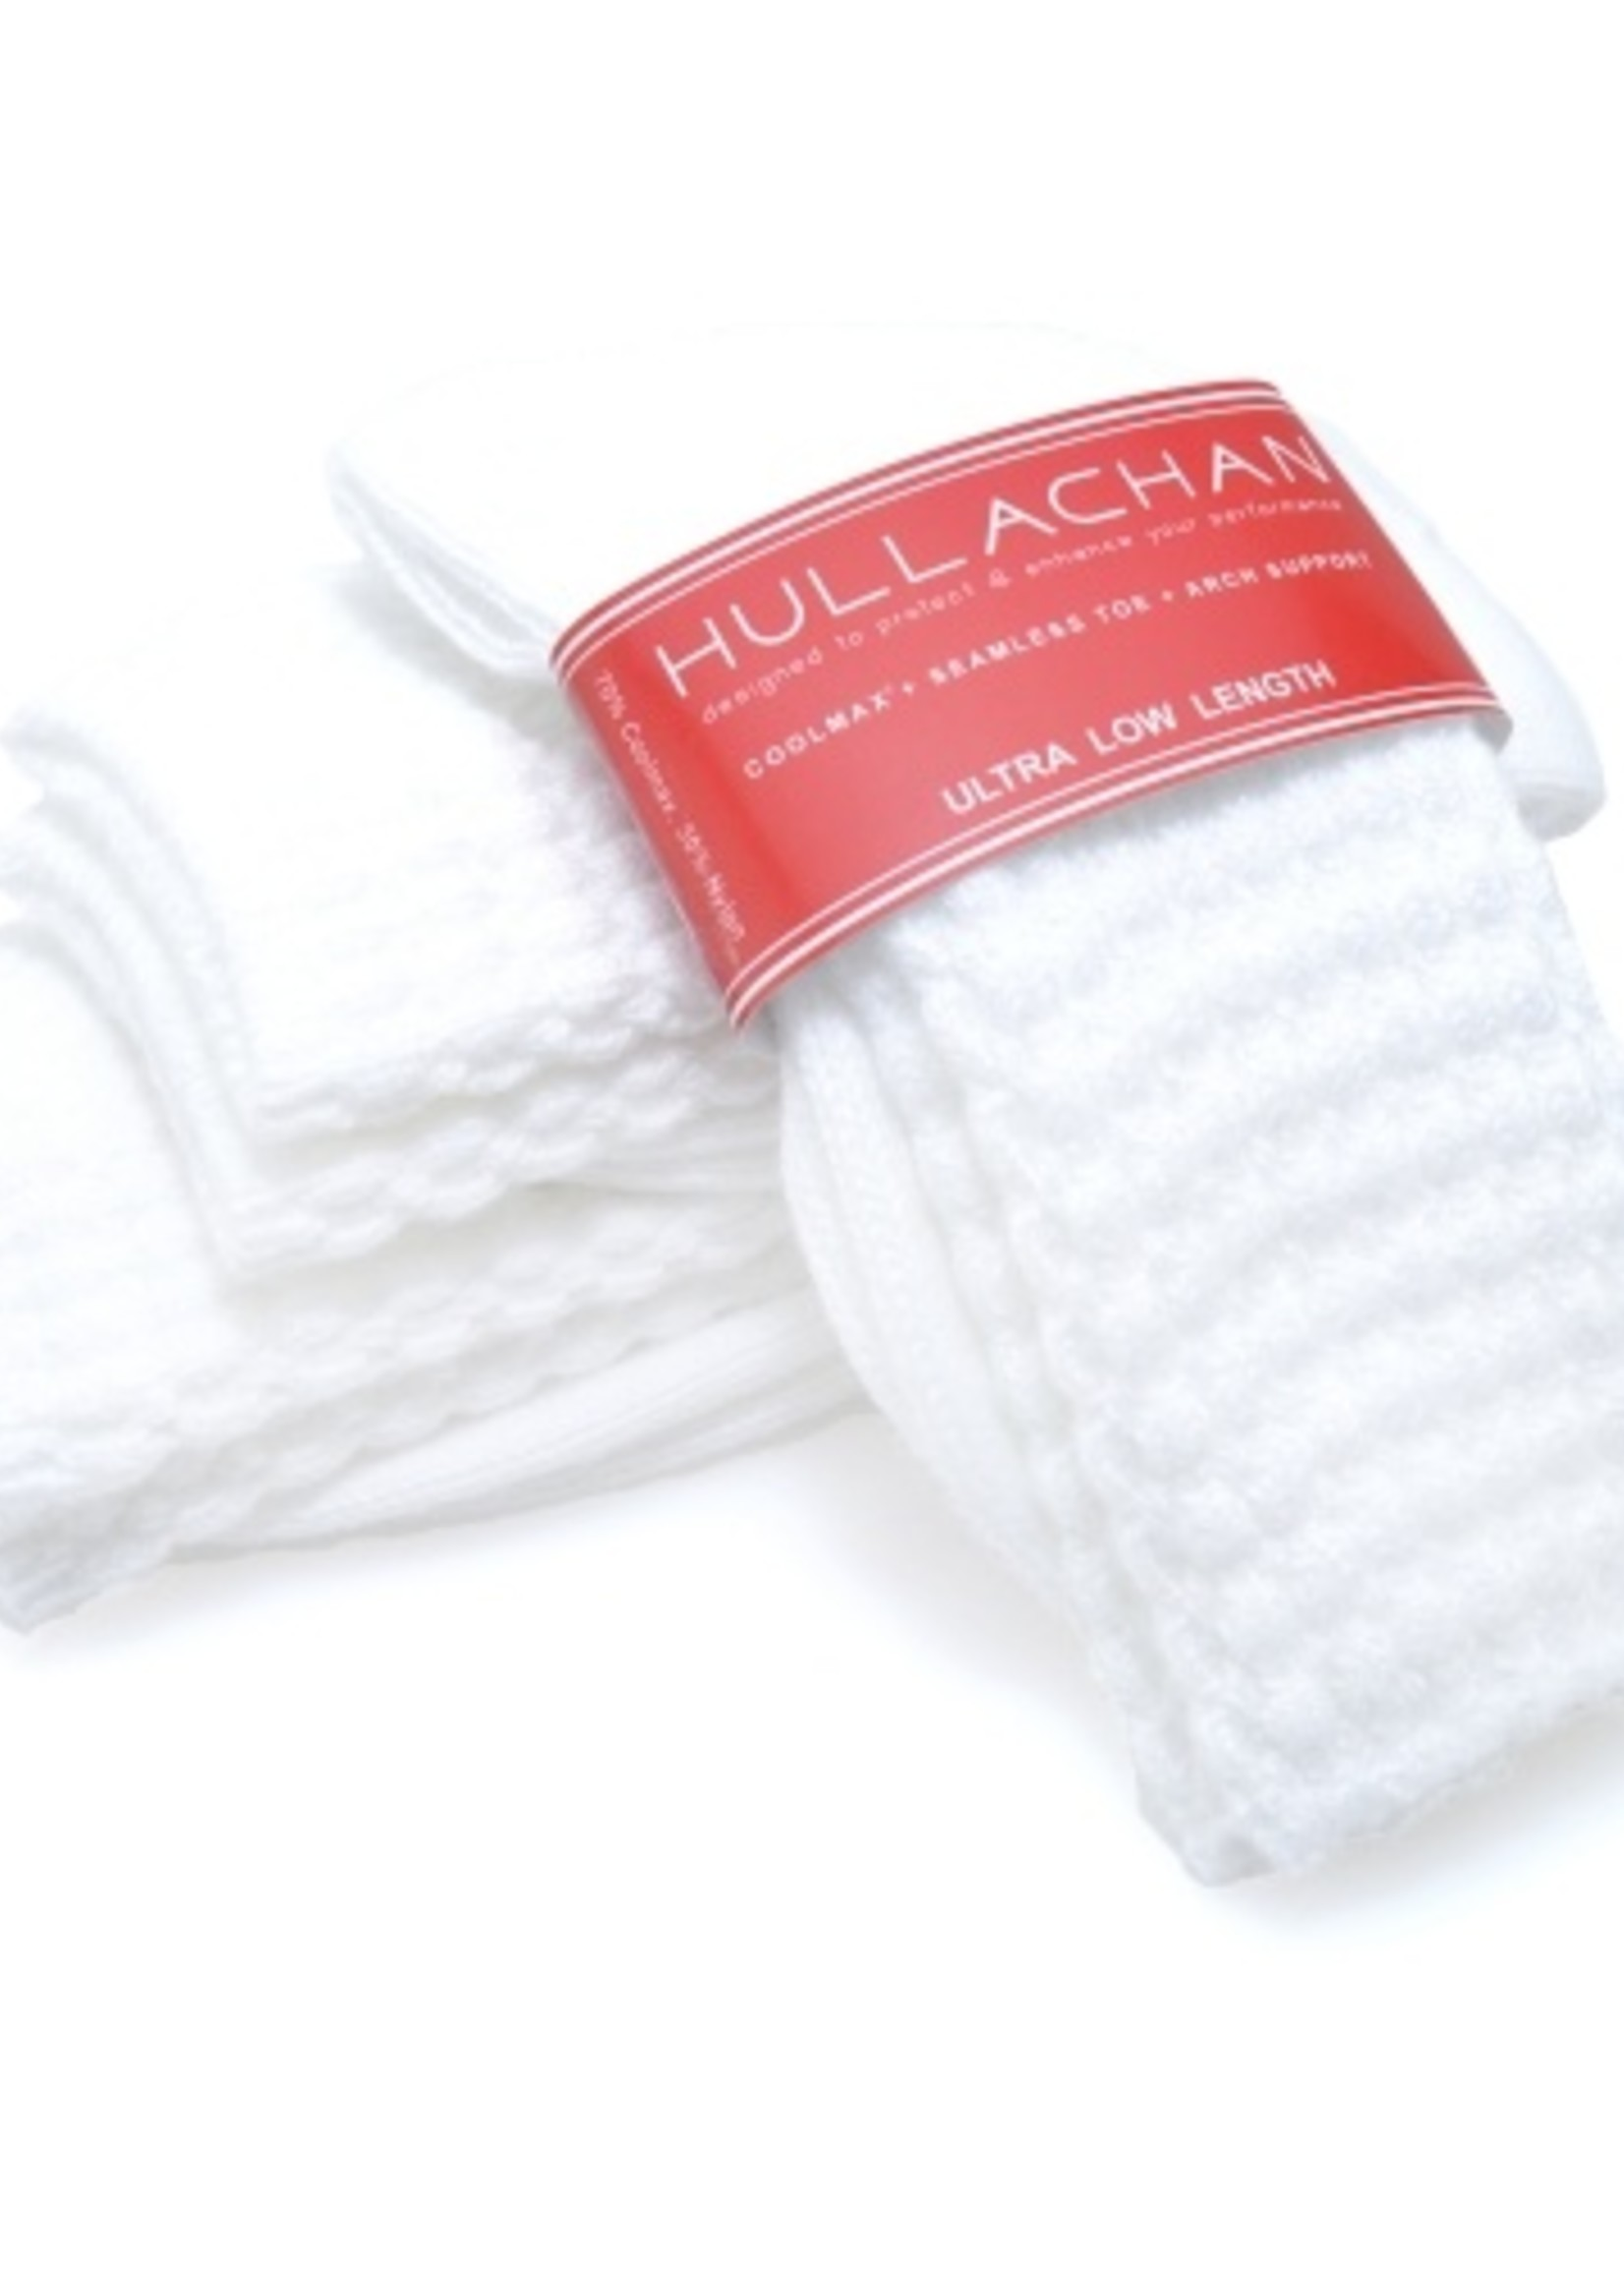 Hulluchan Hulluchan Ultra Low Premium Socks